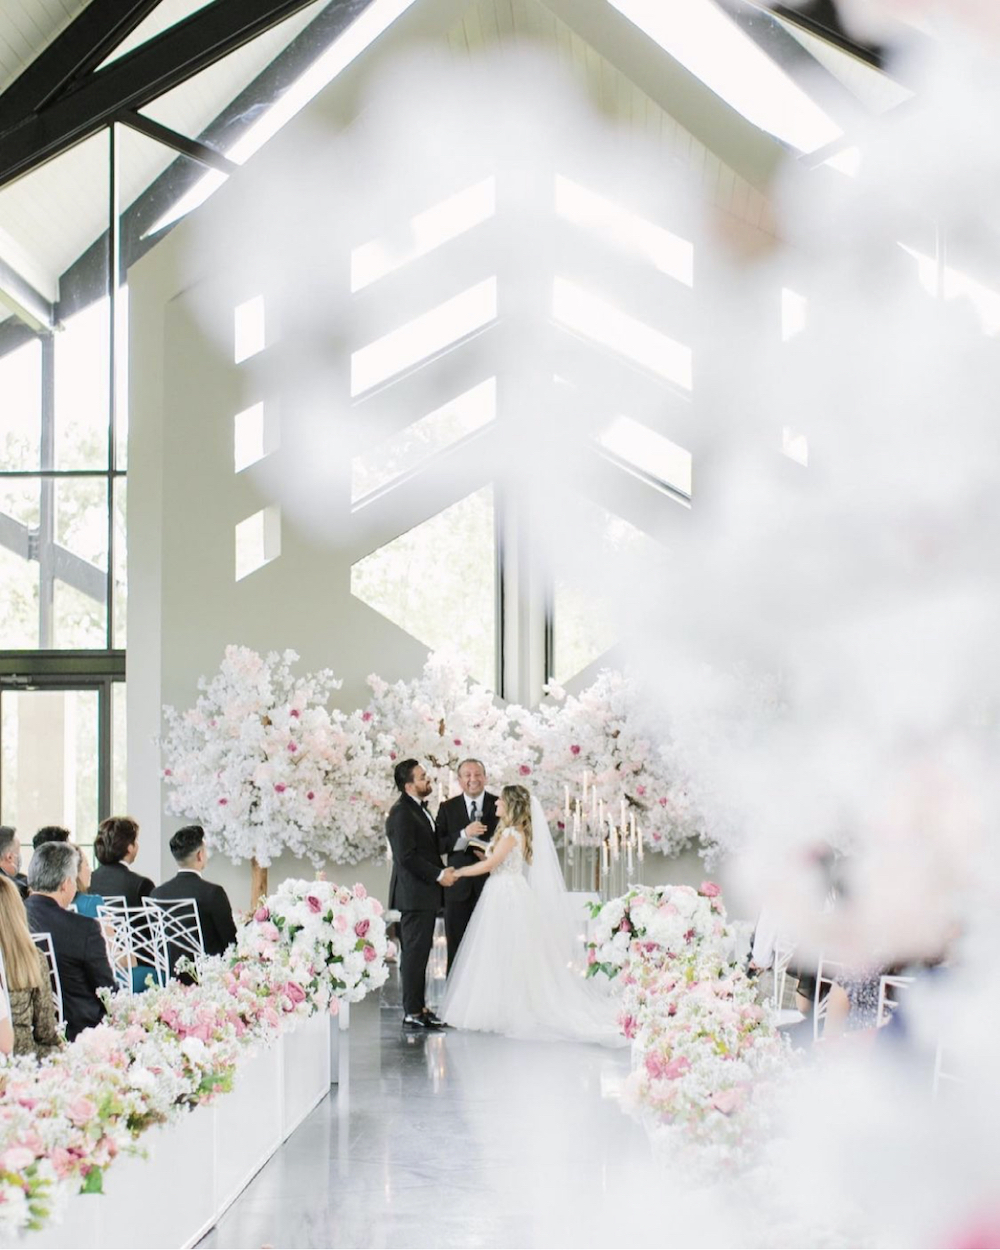 Interior shot of ceremony with lush pink and white florals by event designer, Mod Effect Events.